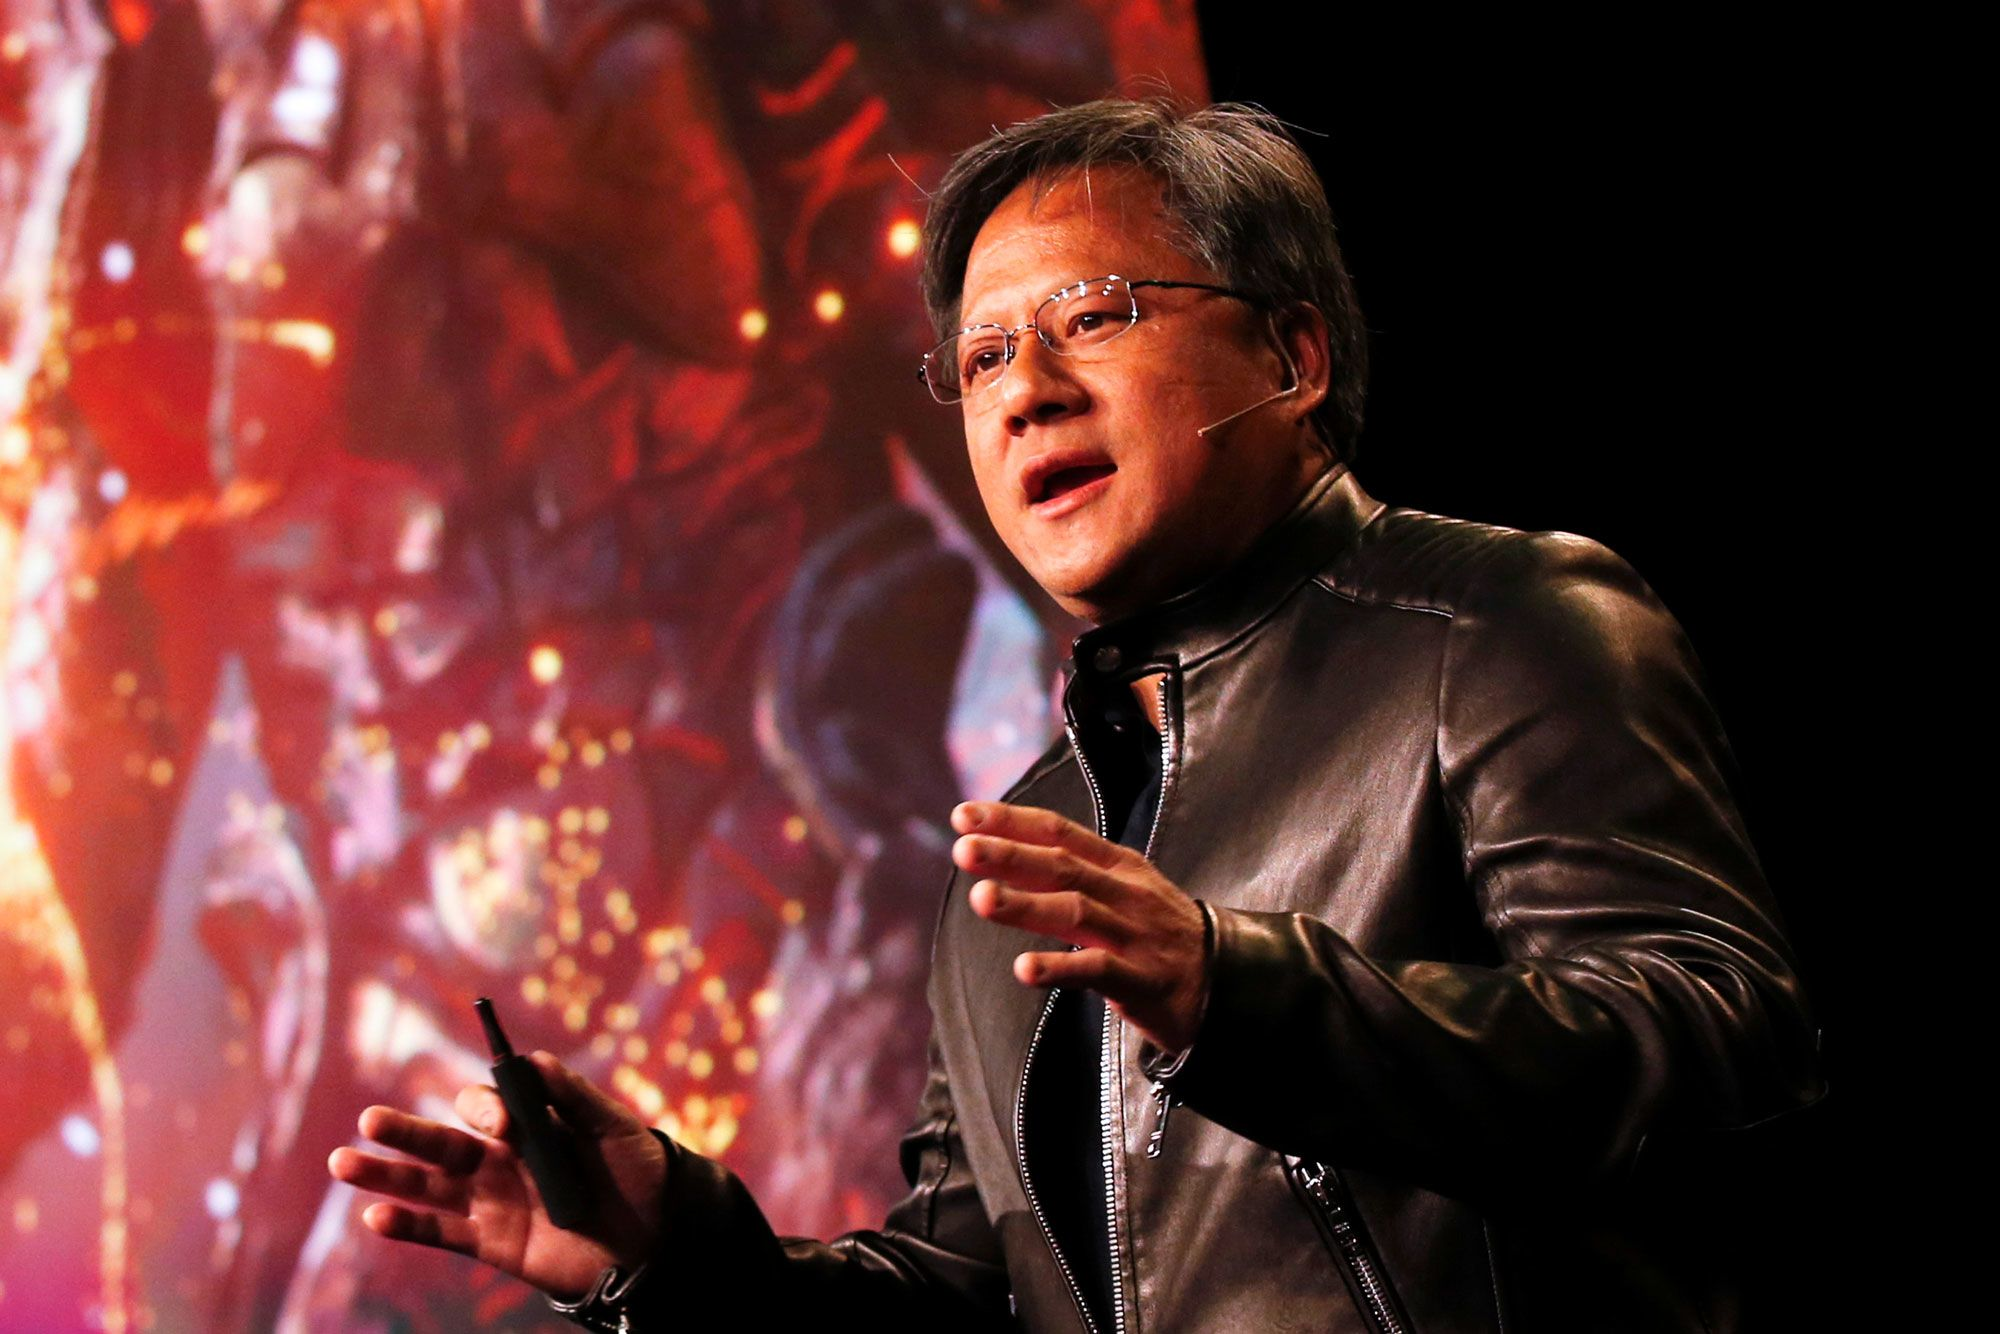 Nvidia CEO doesn't expect China to block $7B takeover of Mellanox